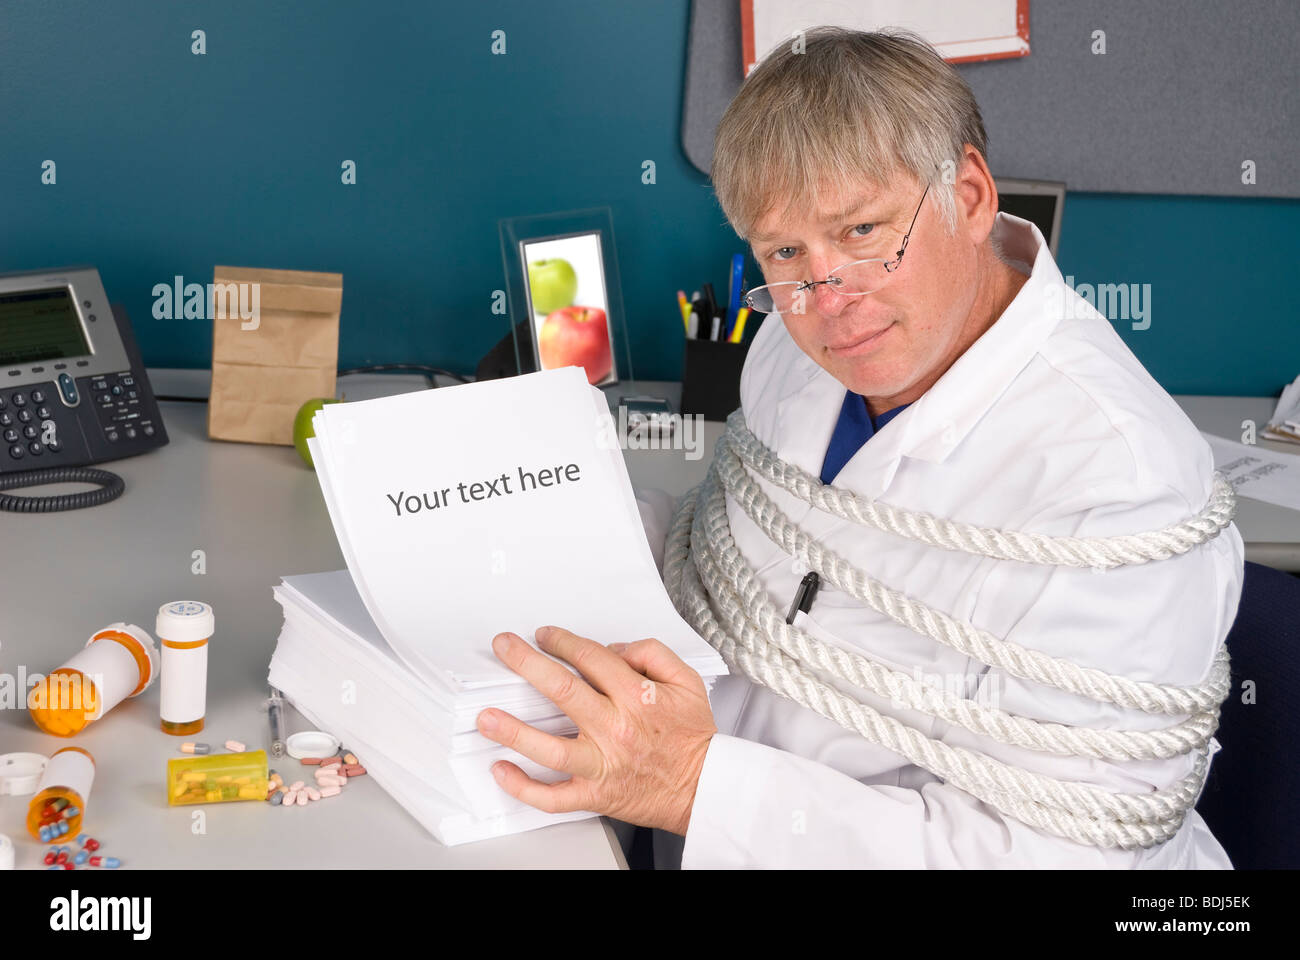 A physician is tied up with a load of bureaucratic paperwork preventing him from doing his job. Stock Photo